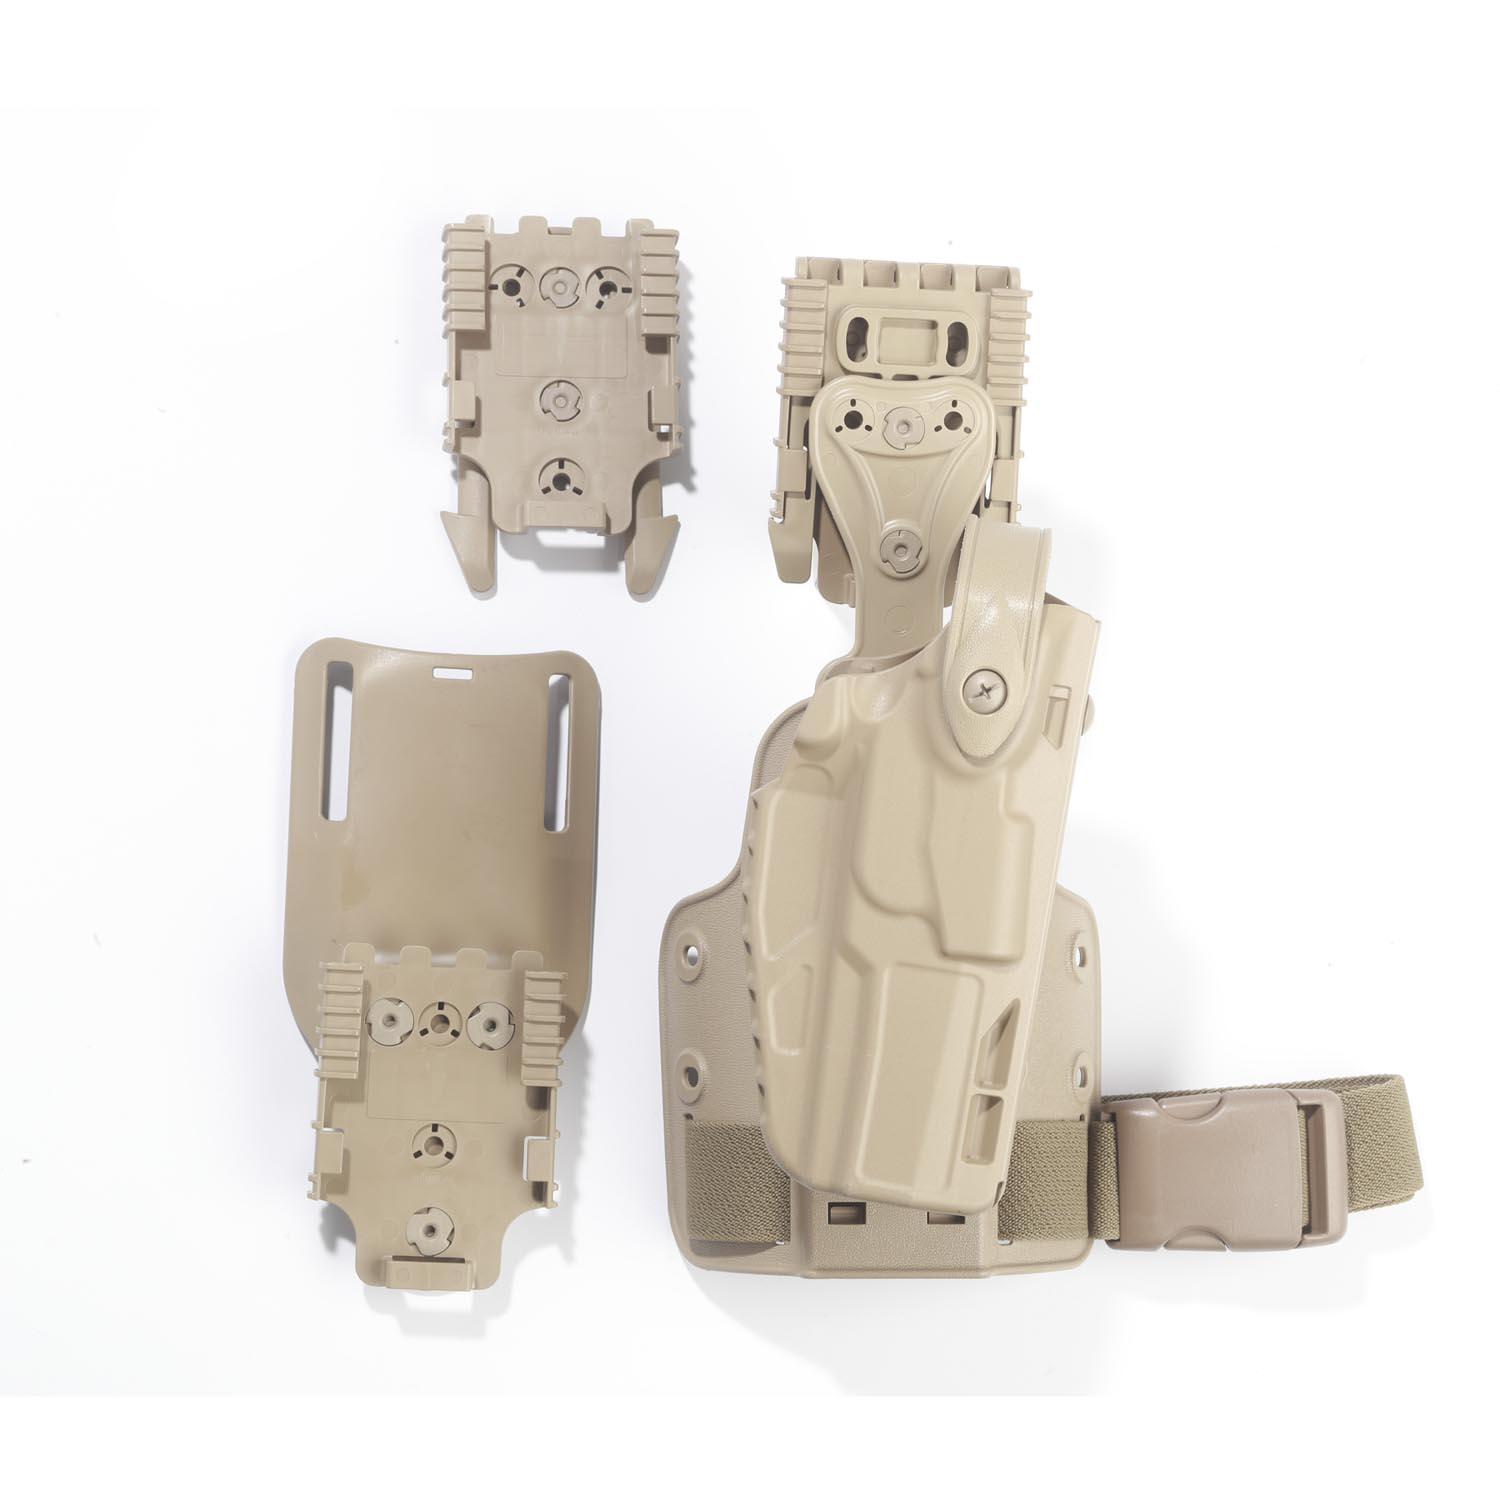 Safariland Army Modular Tactical Holster (AMTH) Kit System